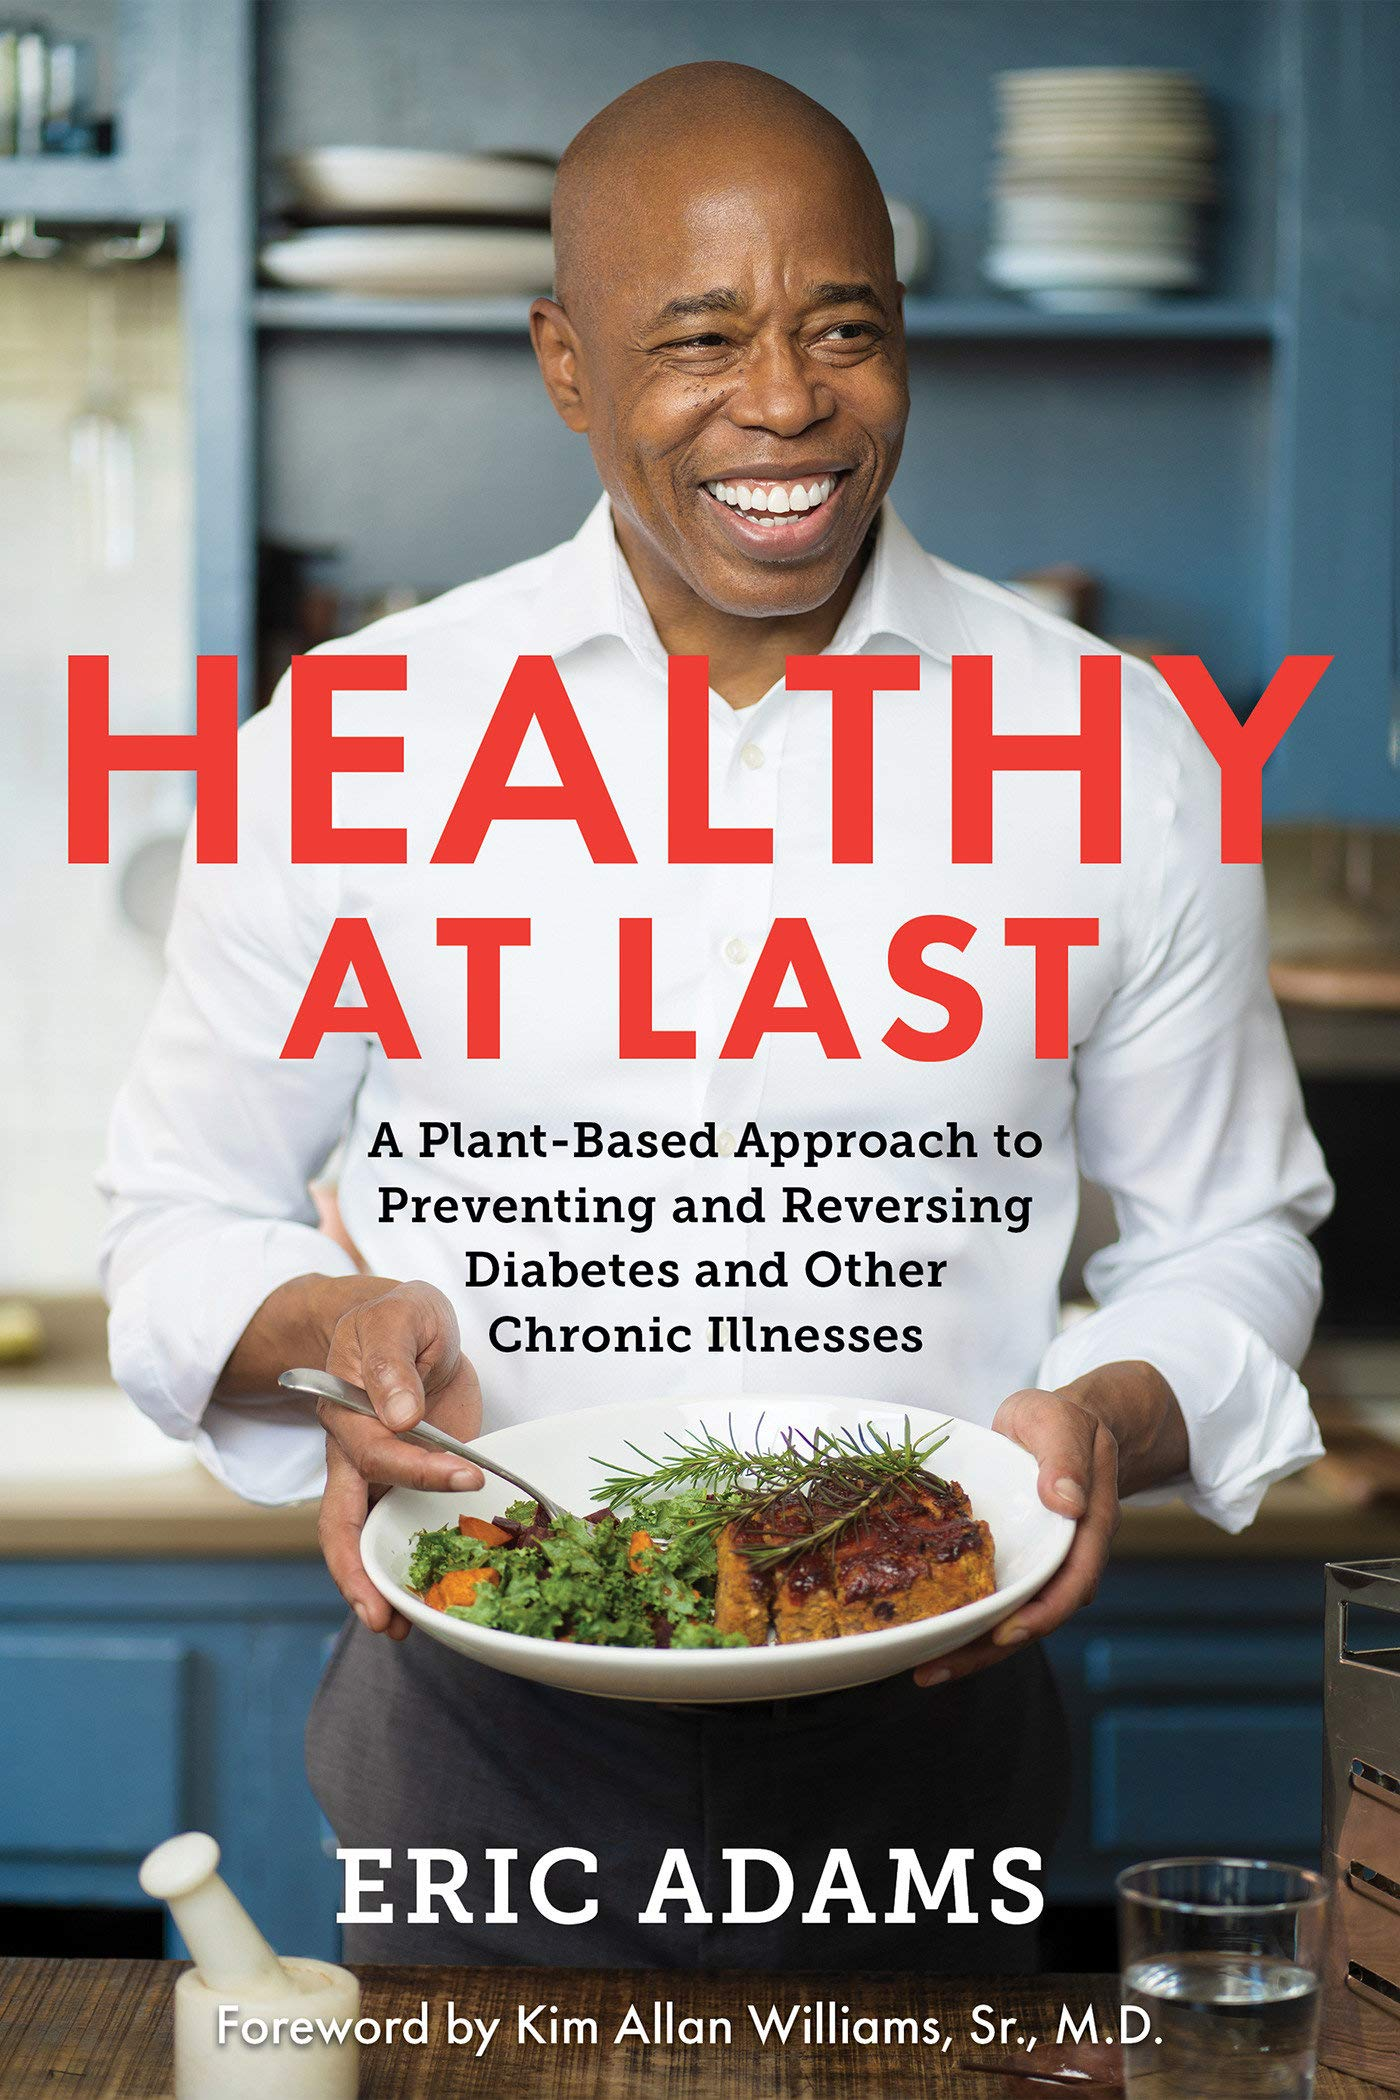 Healthy at Last: A Plant-Based Approach to Preventing and Reversing Diabetes and Other Chronic Illnesses 1